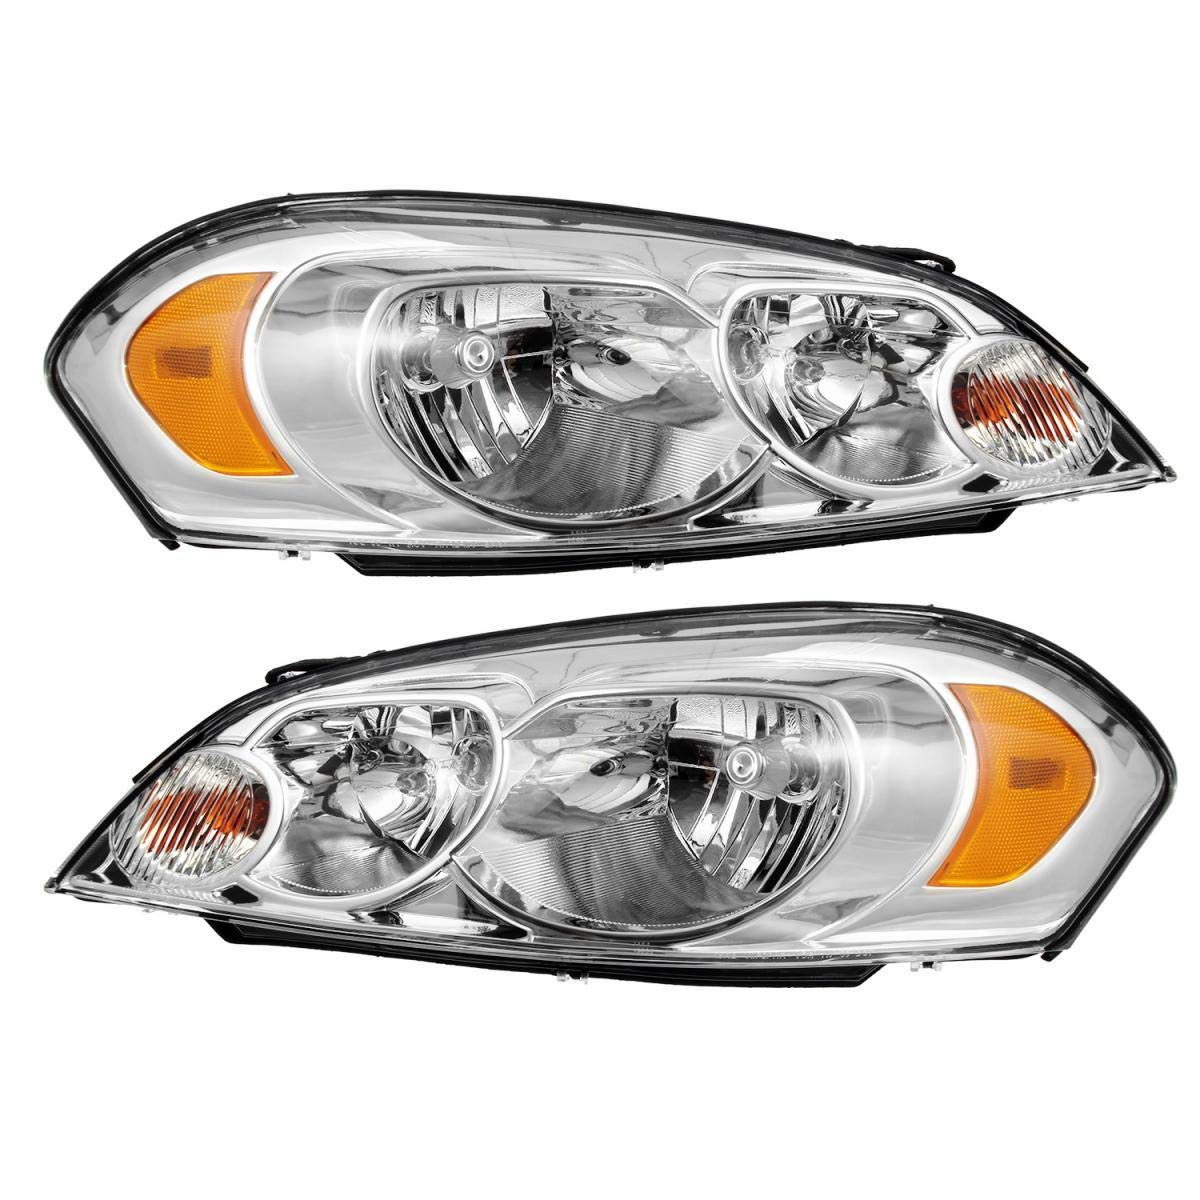 Passenger and Driver Side Partsam Headlight Headlamps Assembly Replacement for Chevy Impala 06 07 08 09 10 11 12 13//Chevy Monte Carlo 06 07 Left Right Chrome Housing Amber Reflector Clear Lens Lamp